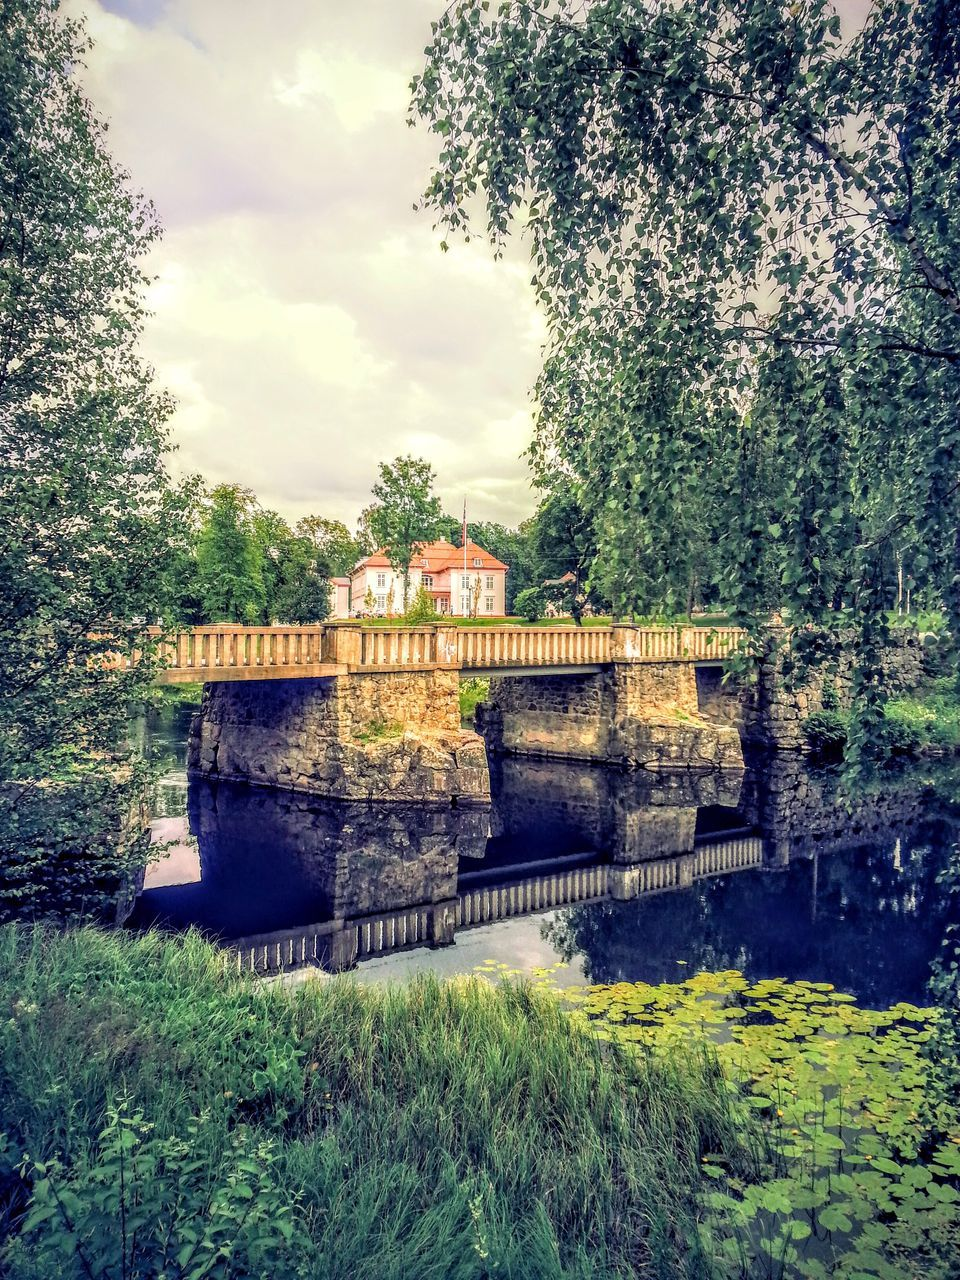 architecture, built structure, tree, no people, day, bridge - man made structure, connection, outdoors, green color, cloud - sky, sky, building exterior, water, nature, beauty in nature